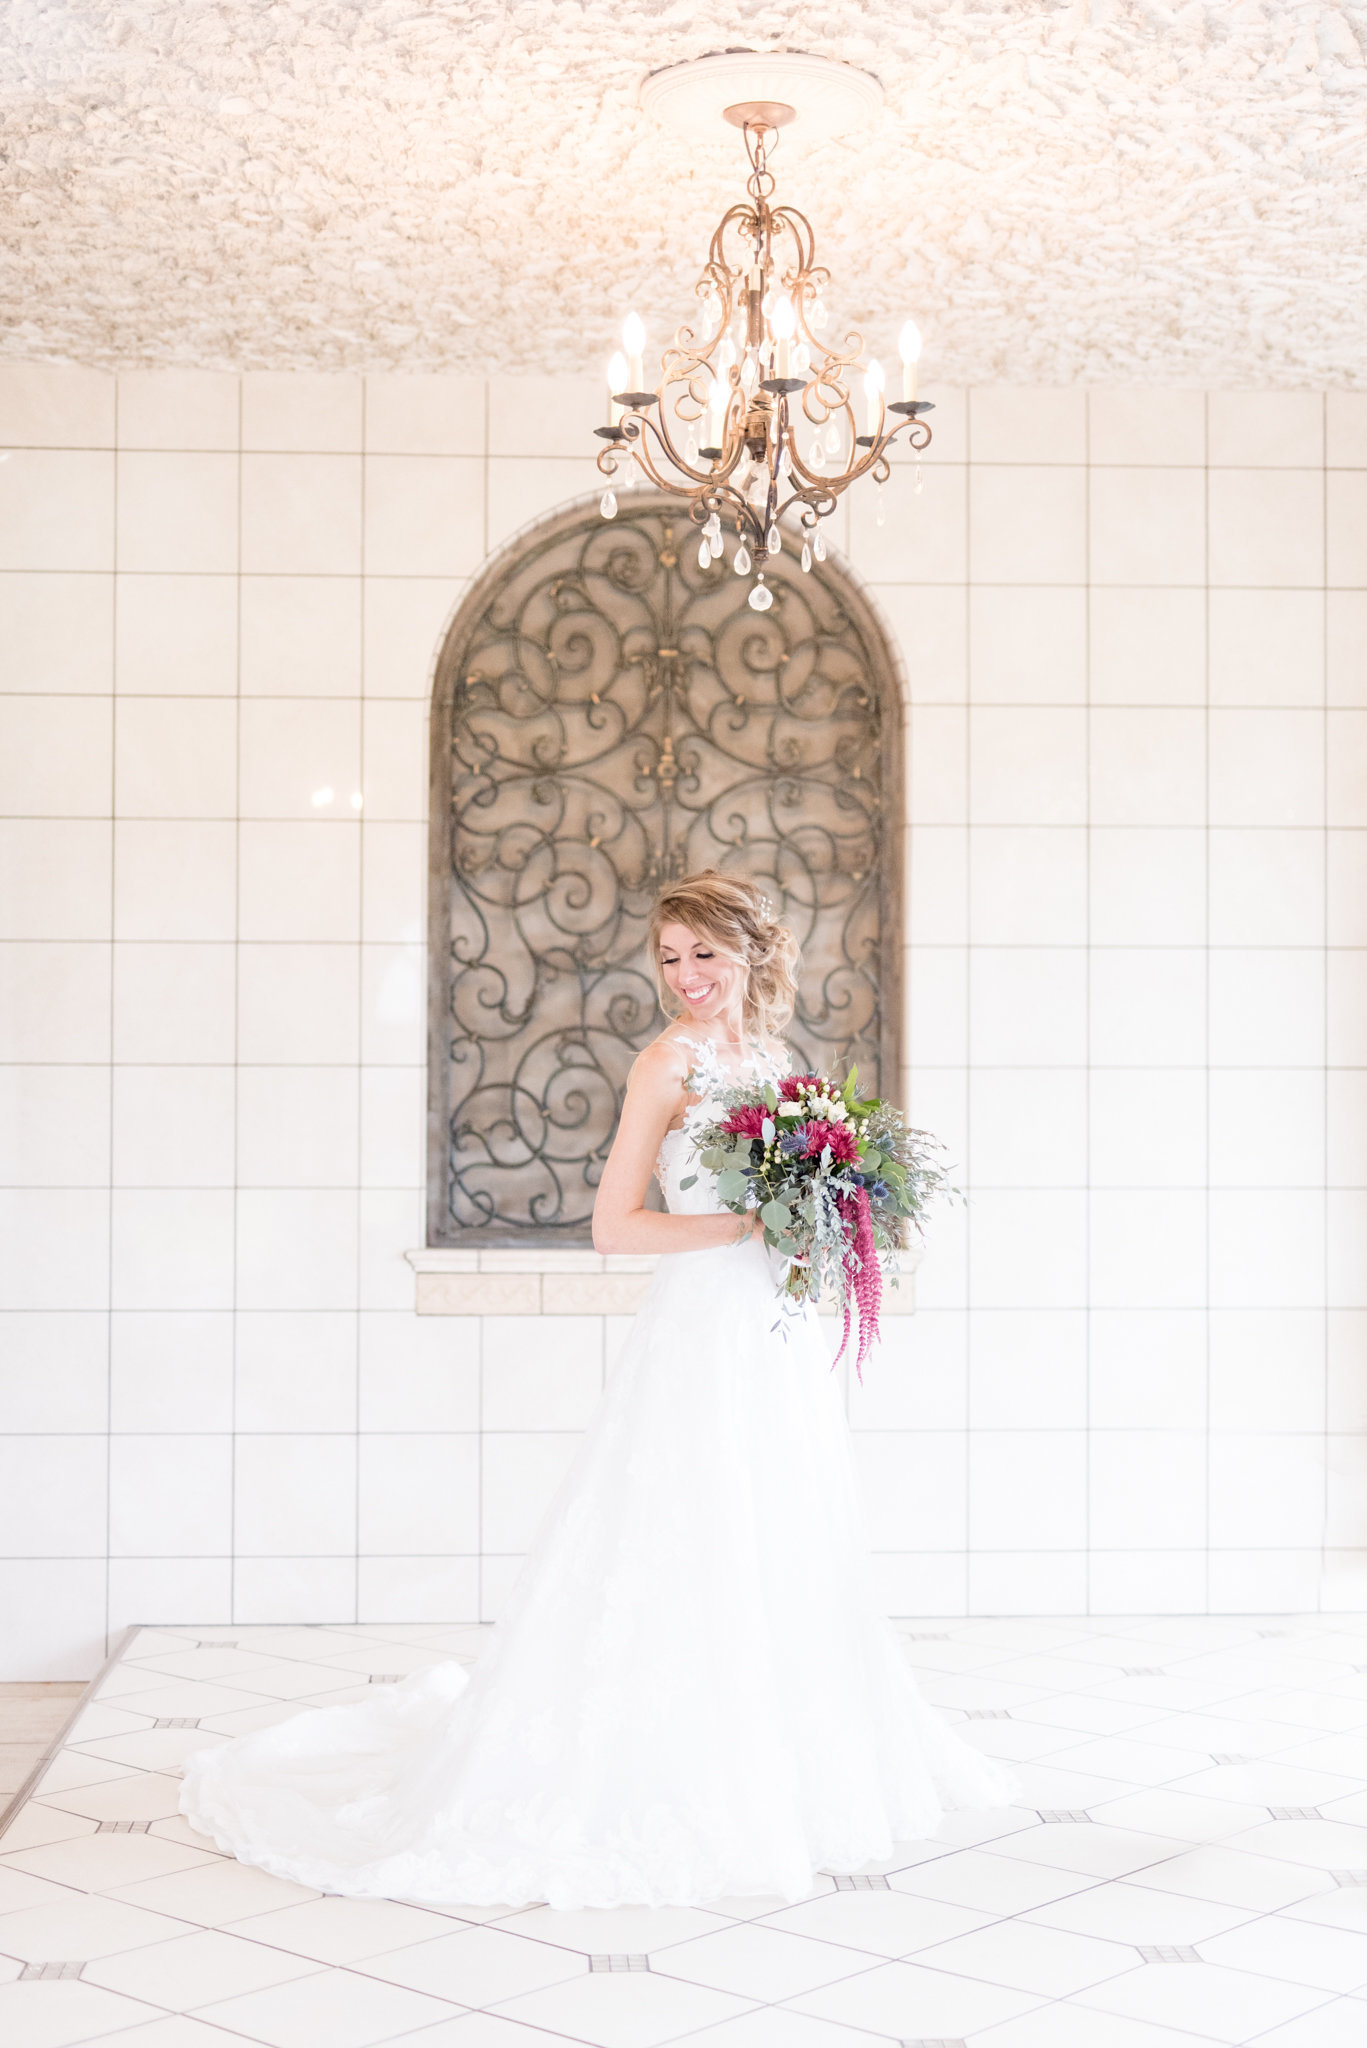 Bride stands in ceremony space and smiles.